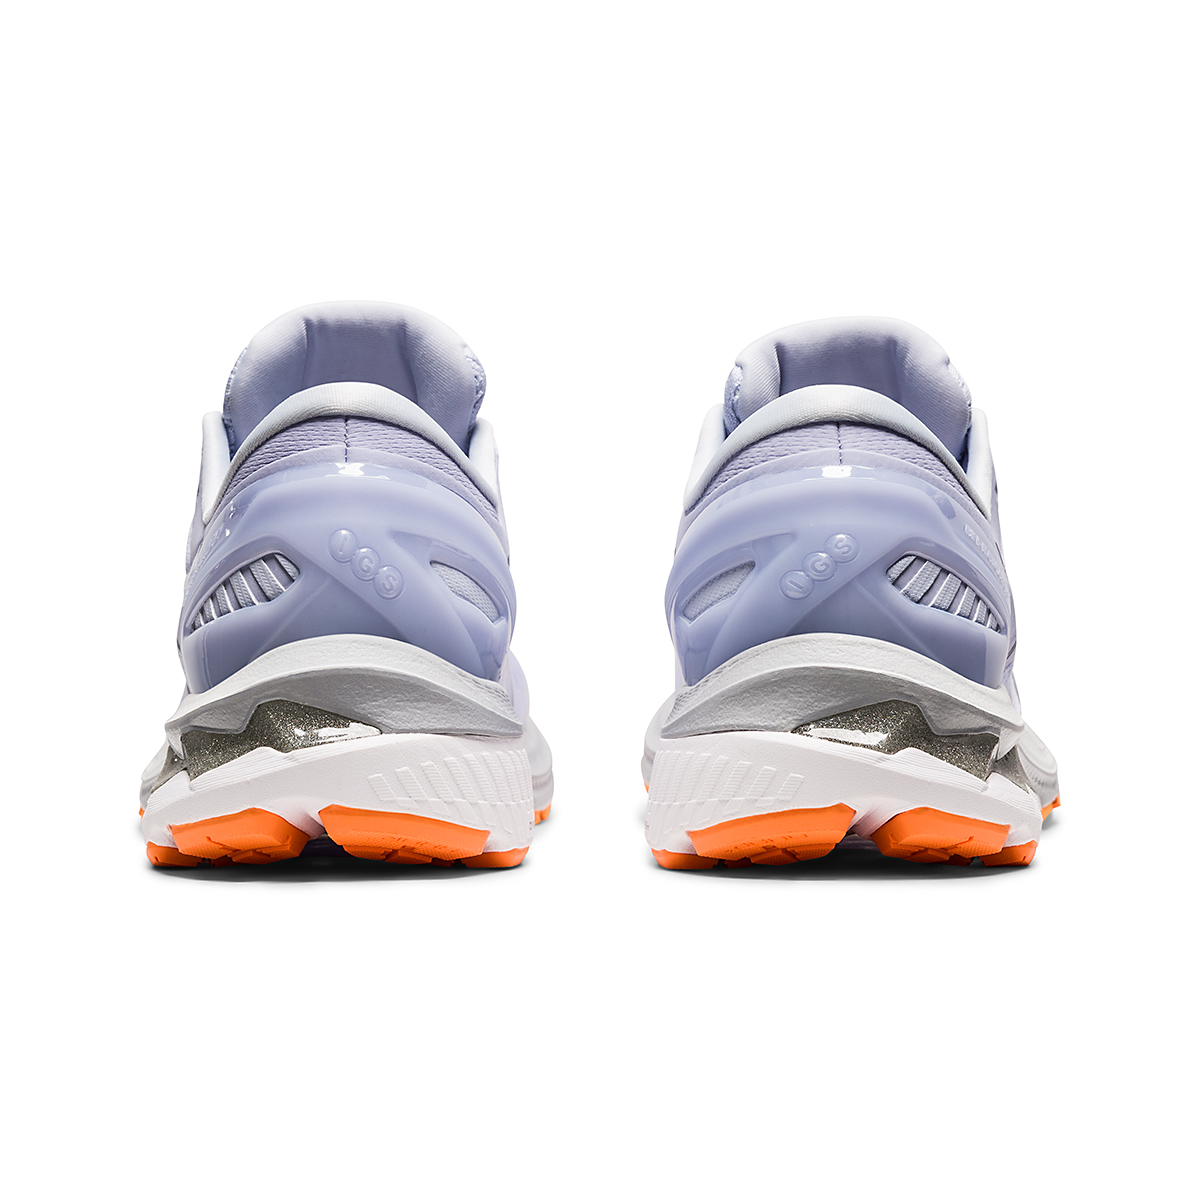 Women's Asics GEL-Kayano 27 Running Shoe - Color: Lilac Opal/Pure Silver - Size: 6 - Width: Regular, Lilac Opal/Pure Silver, large, image 6